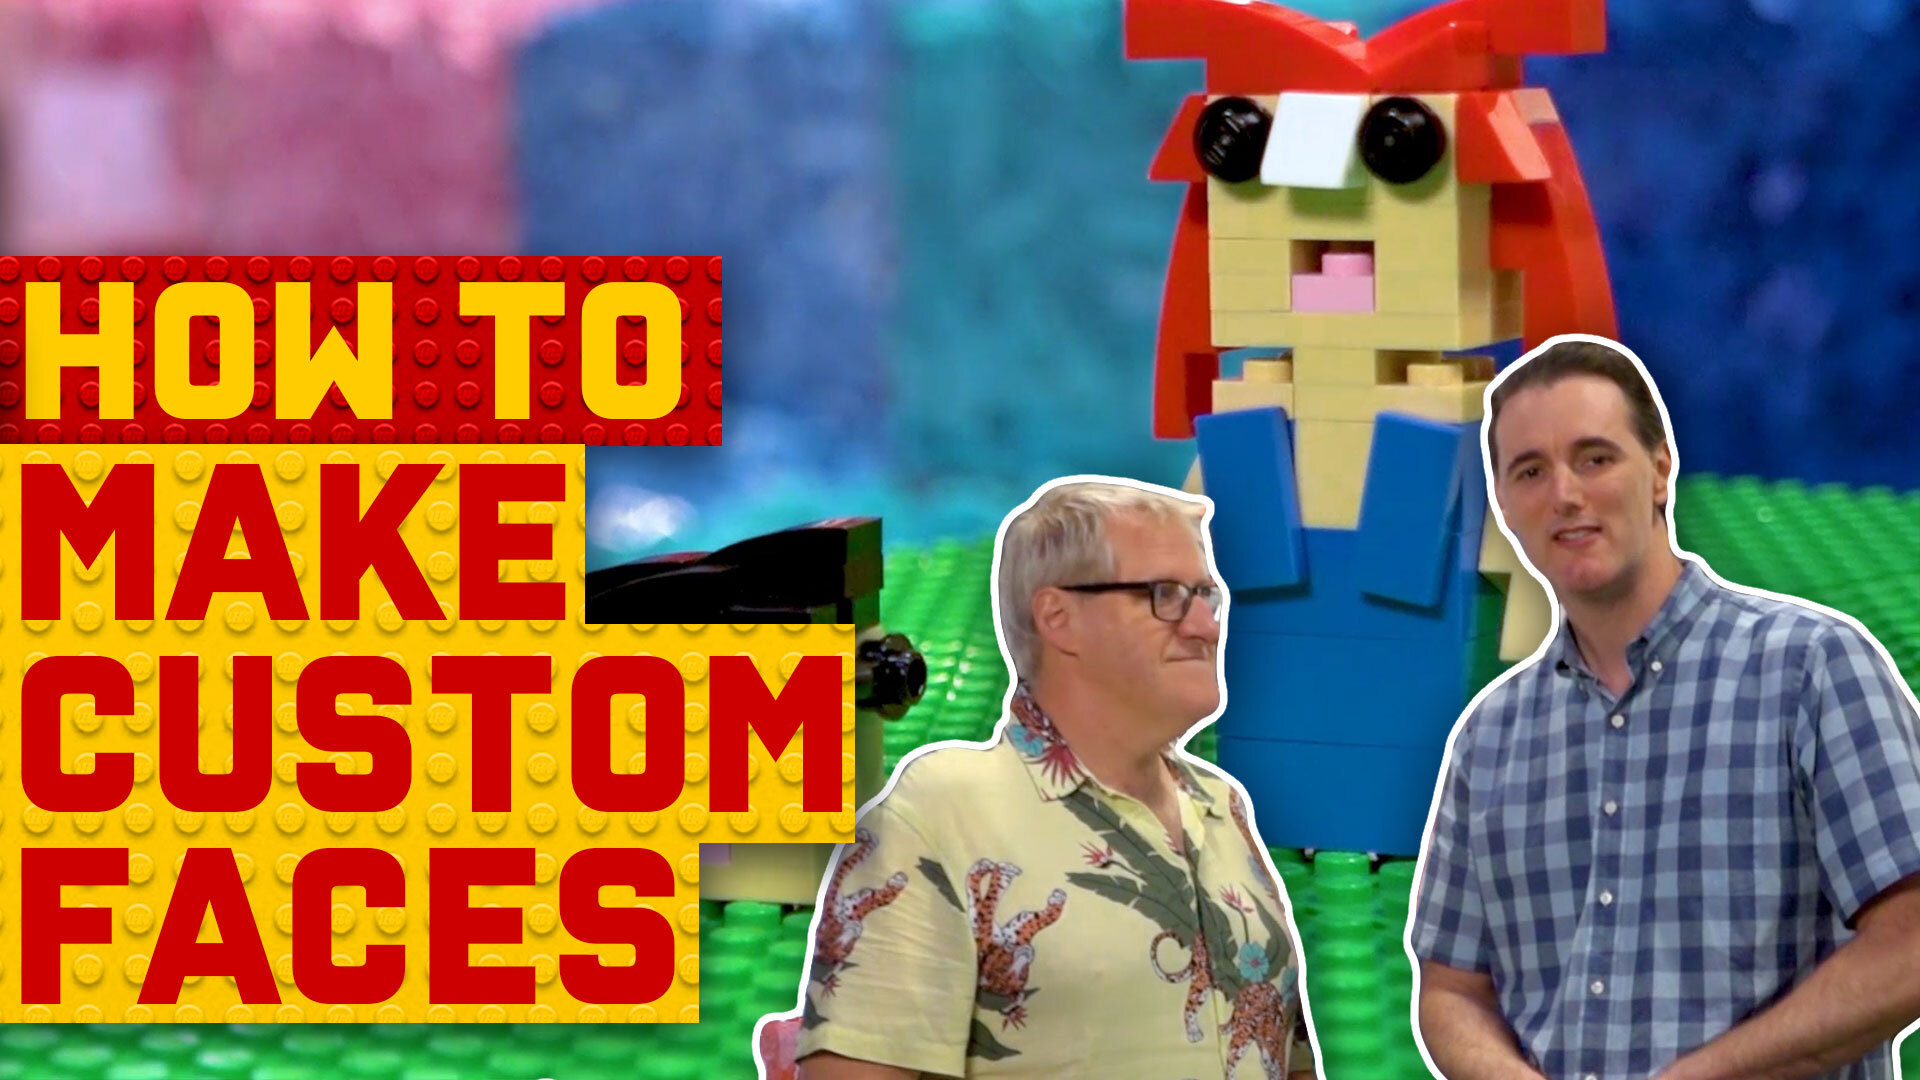 How to make people out of LEGO